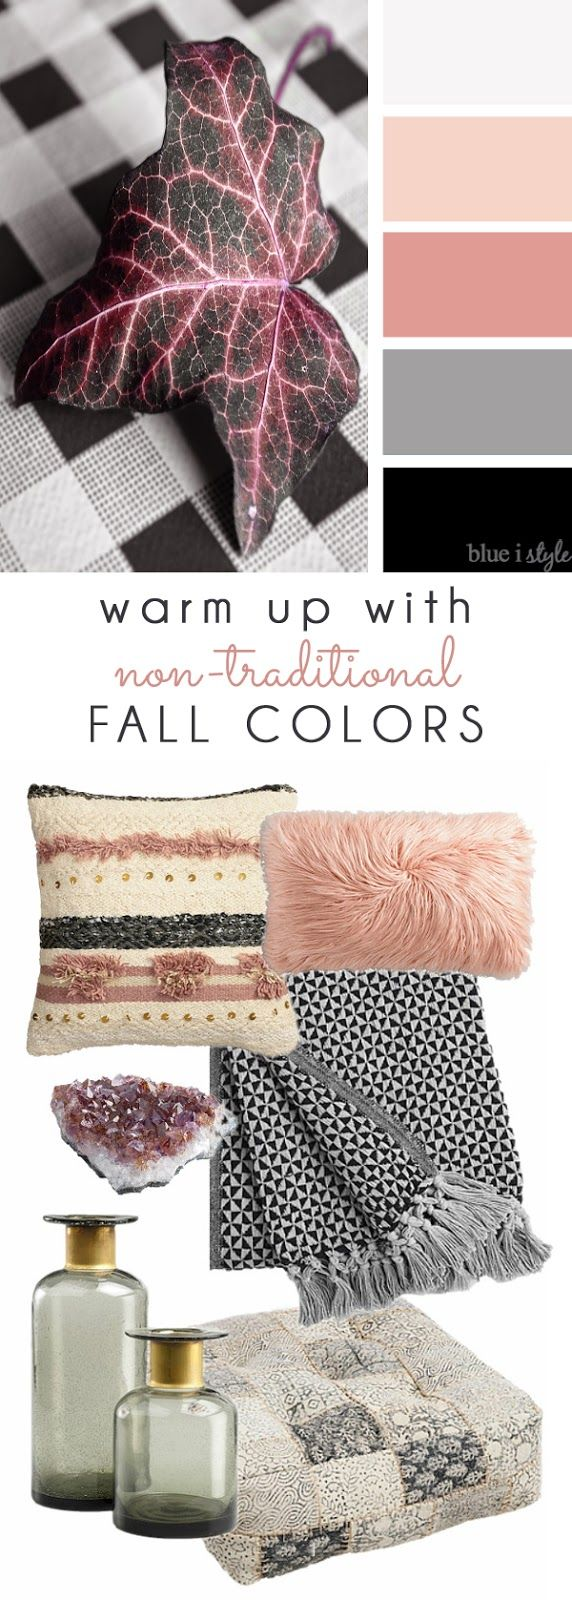 Warm Up Your Space with Unexpected Fall Colors via Blue I Style Blog for Cost Plus World Market www.worldmarket.com #WorldMarket #FallHomeRefresh